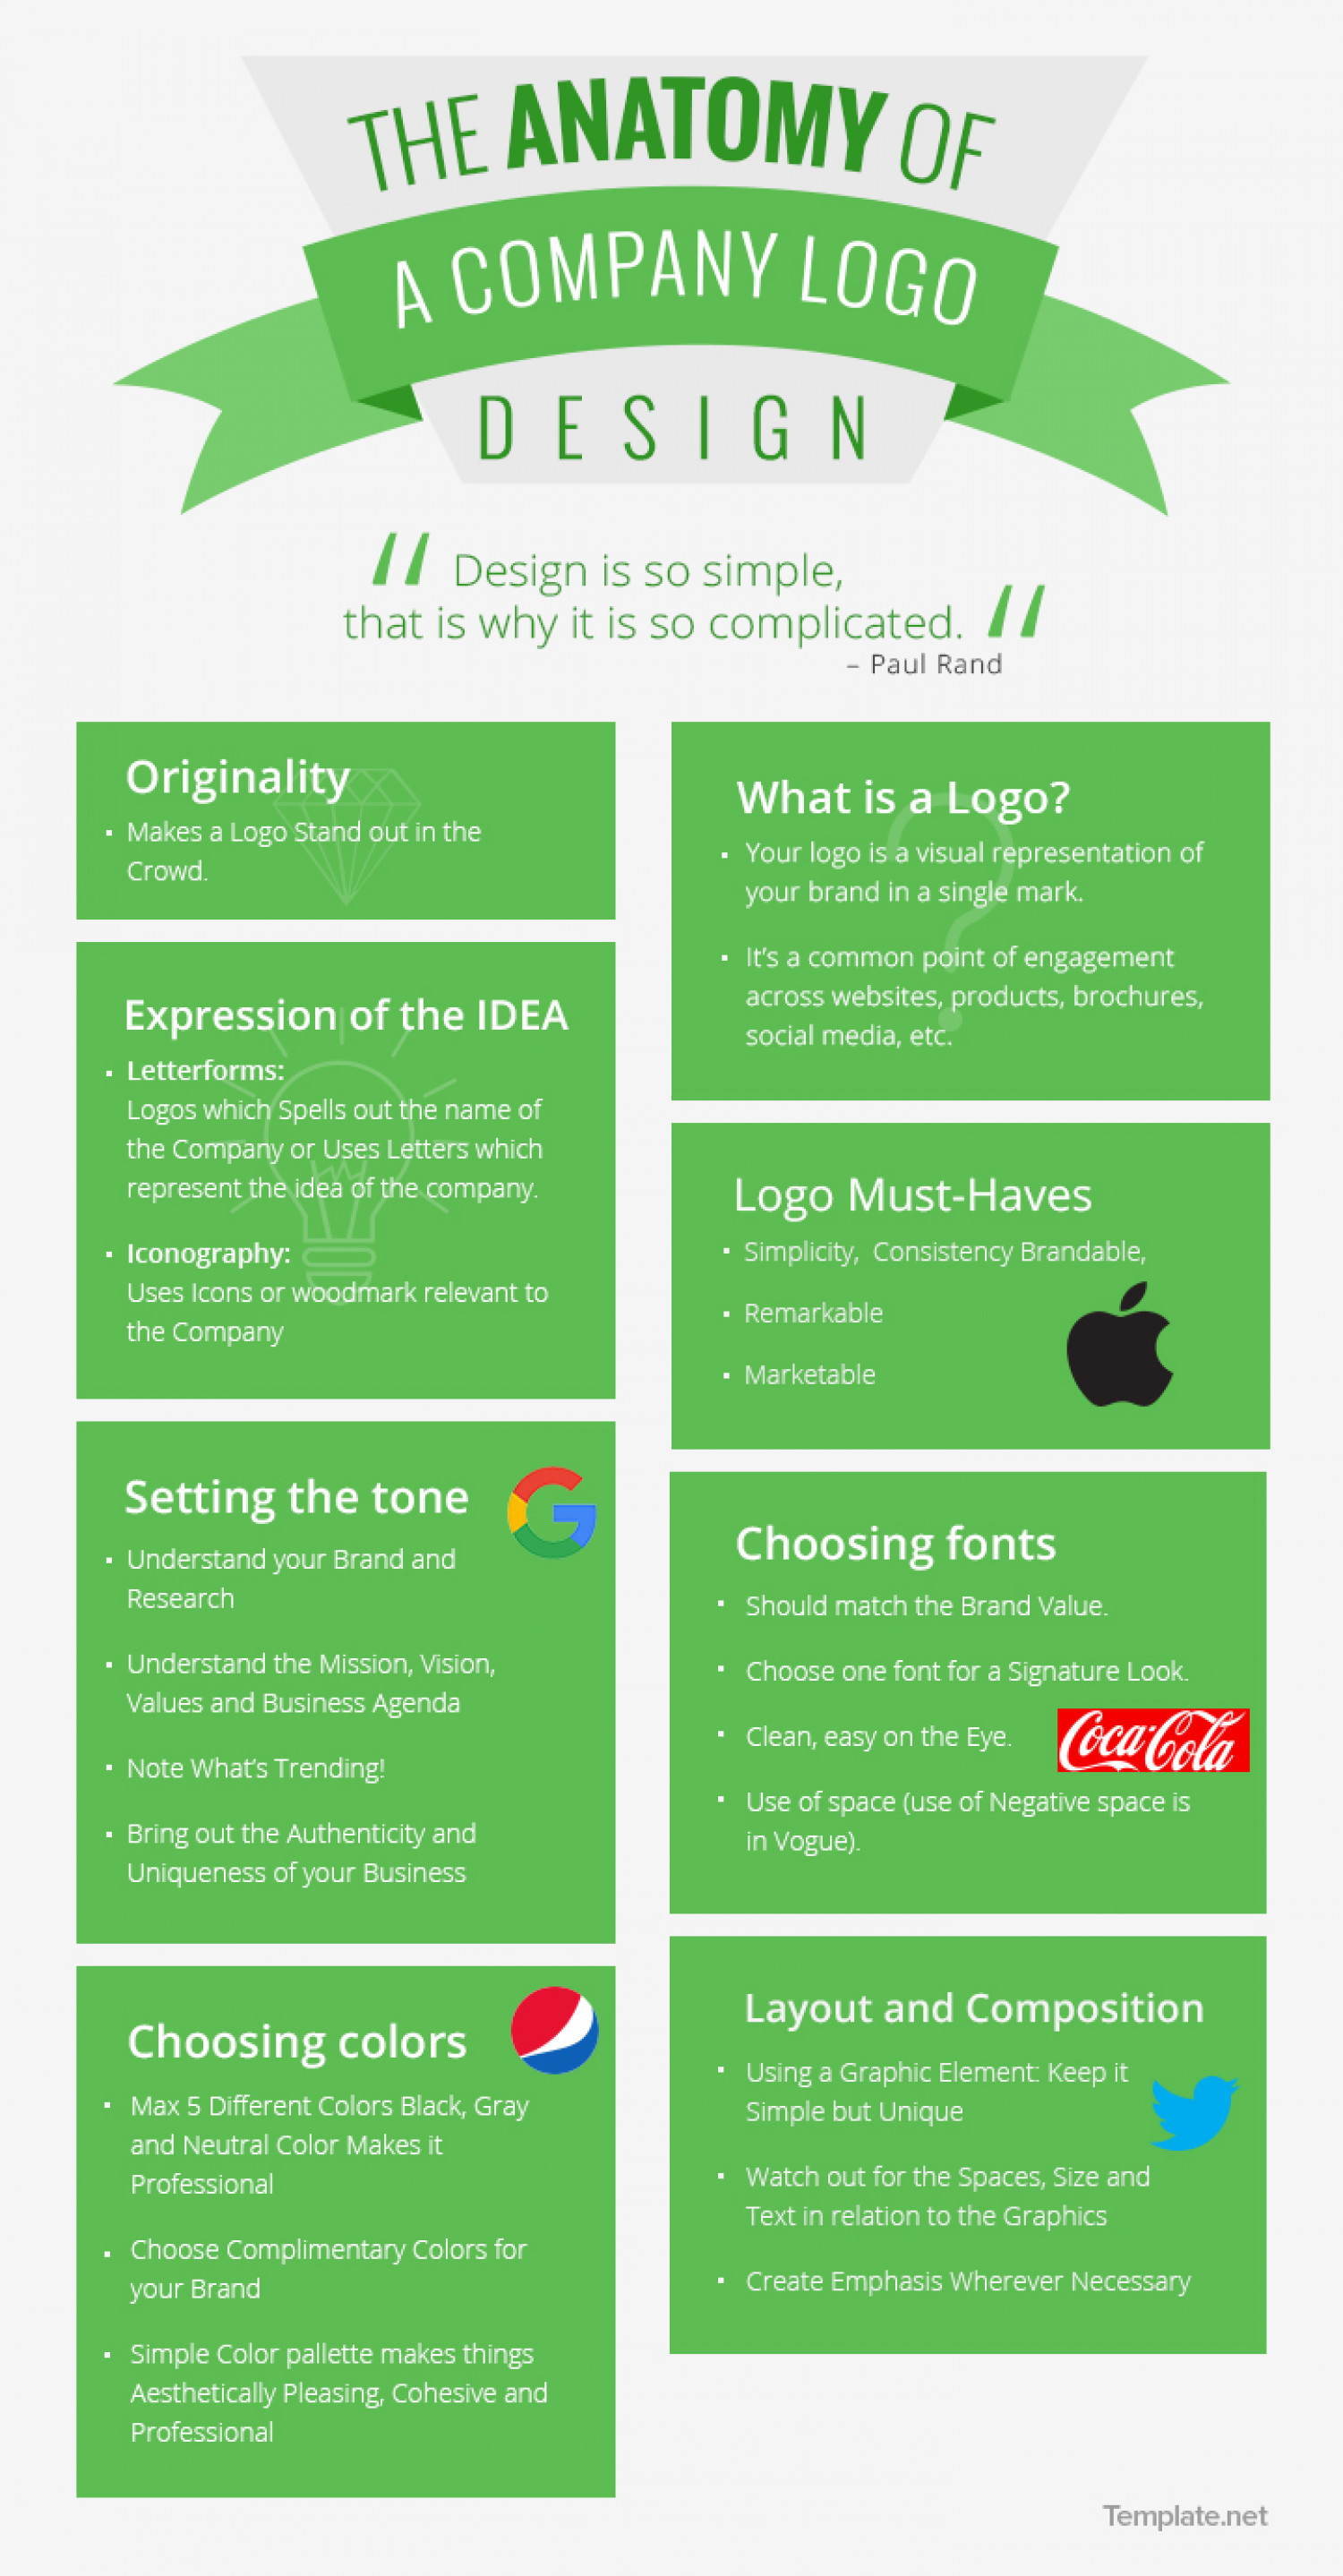 Anatomy of a Company Logo Infographic